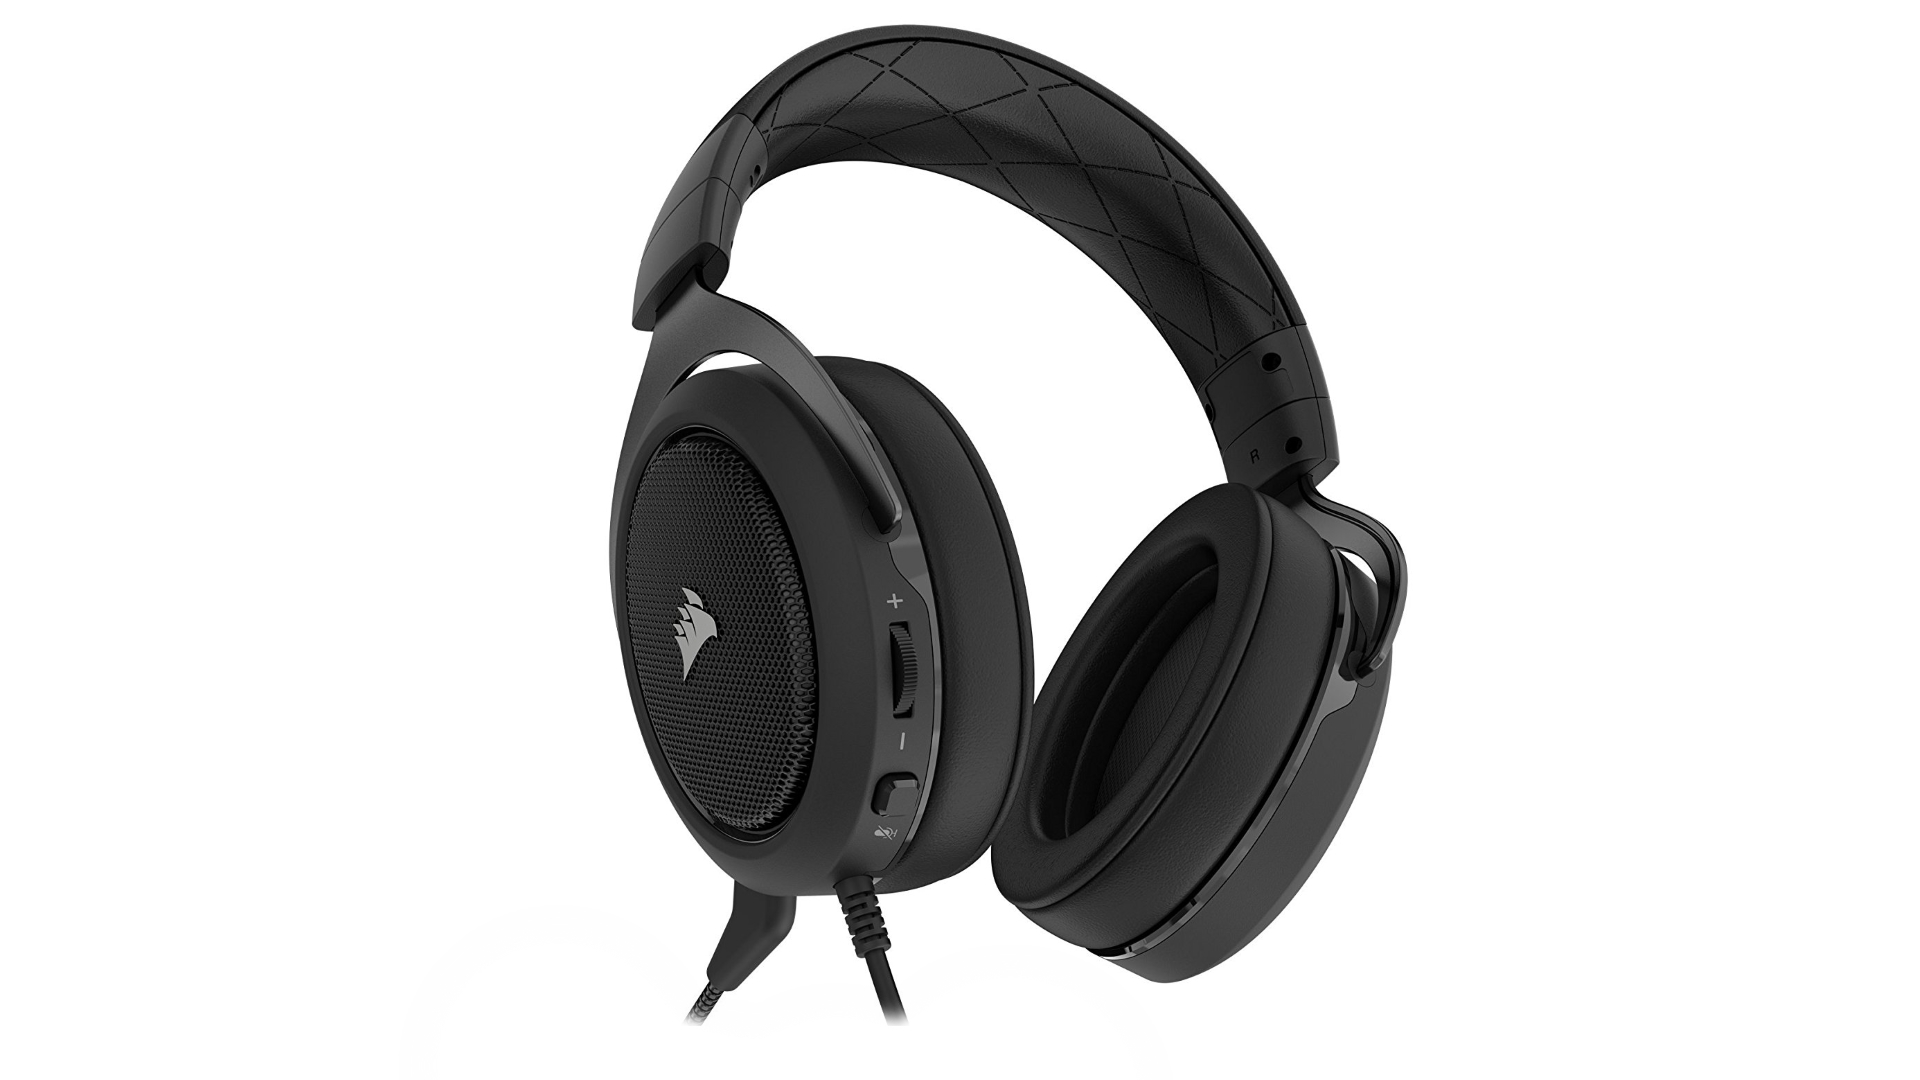 Best Gaming Headset 2018 Pcgamesn Sound Quality Two Output Cheap Corsair Hs50